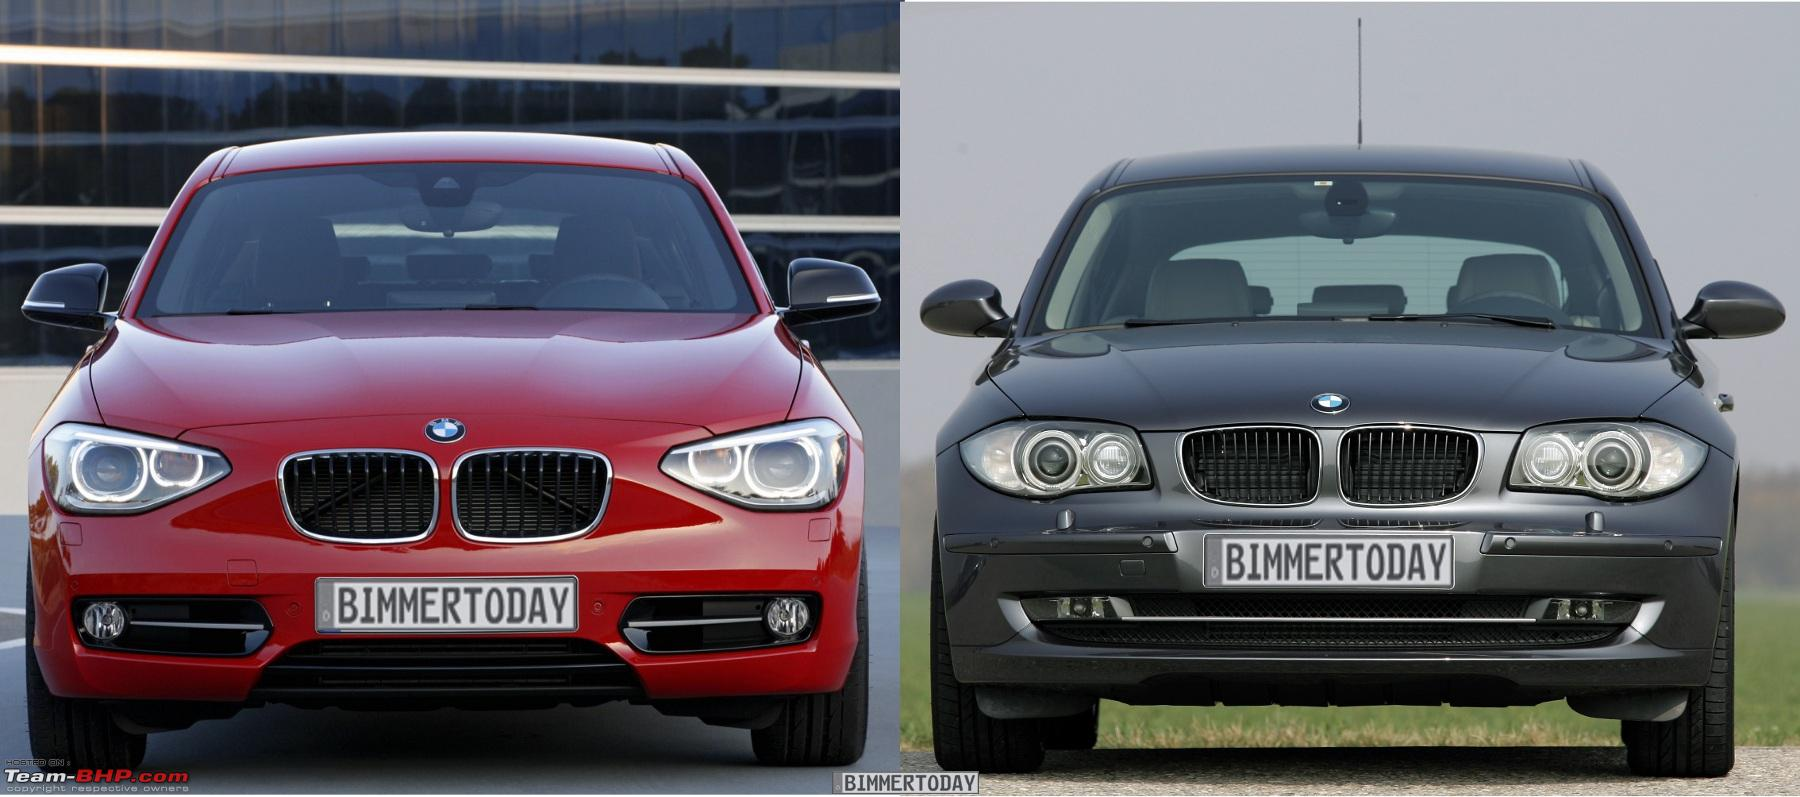 Bmw To Launch The 1 Series Later In 2013 Update Now Launched Page 2 Team Bhp